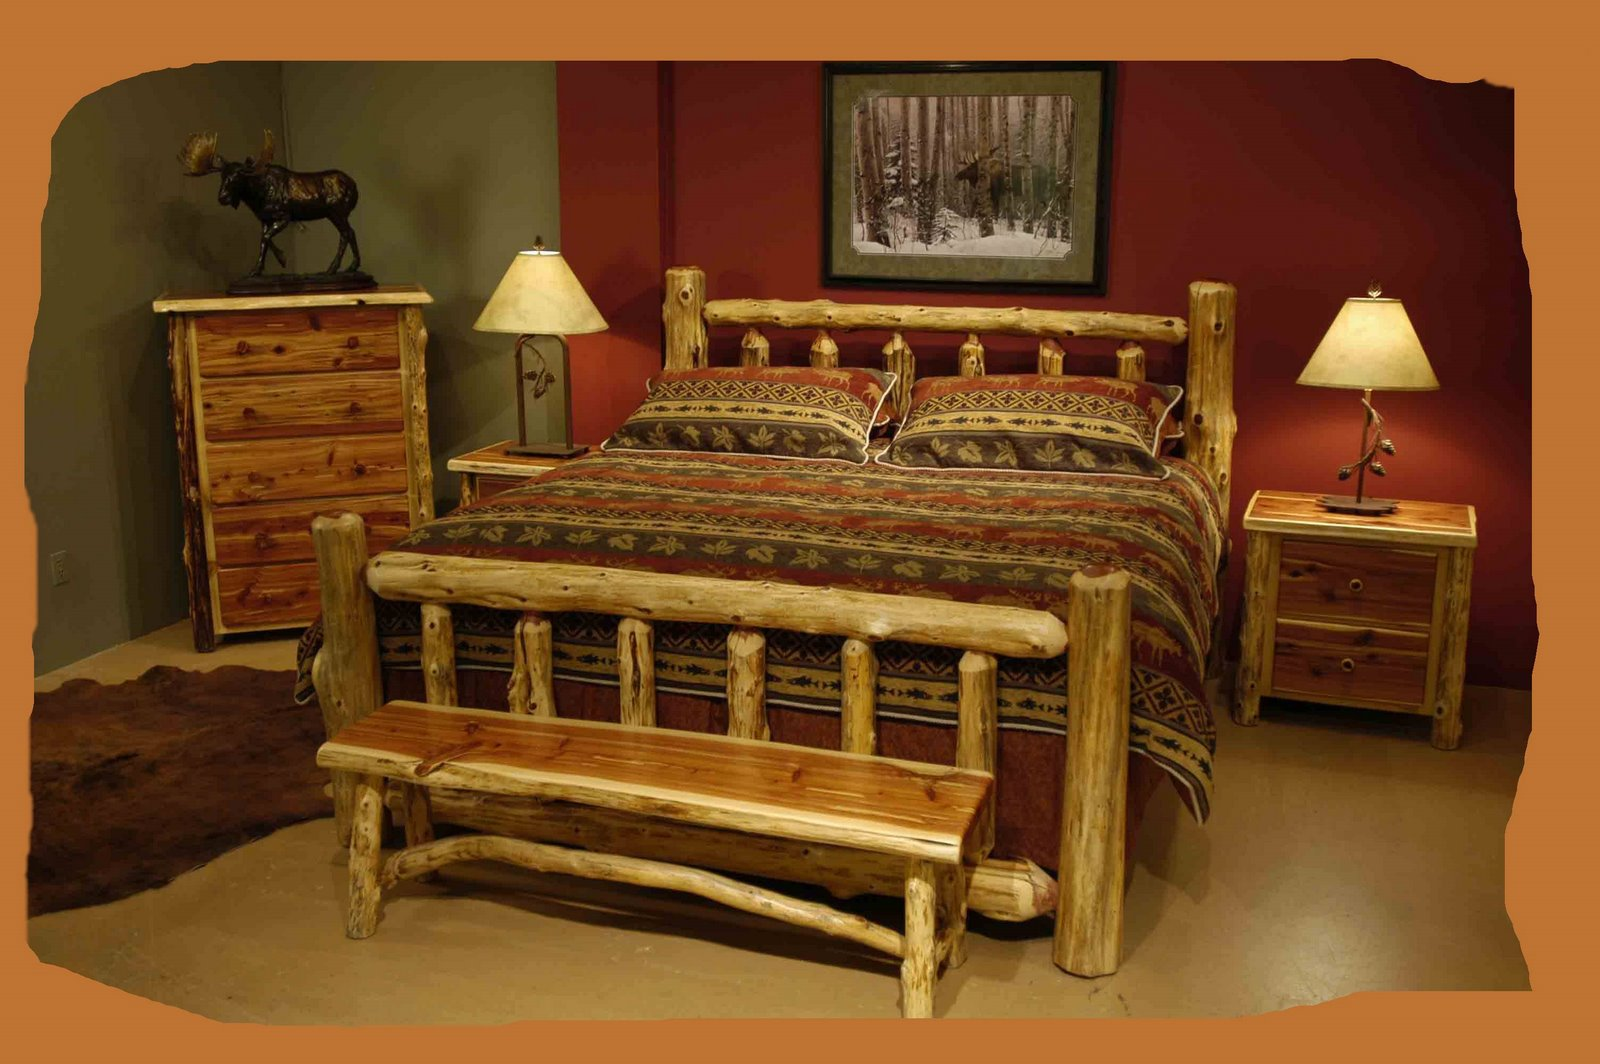 Rustic chic home decor a batty life for Log cabin style bunk beds